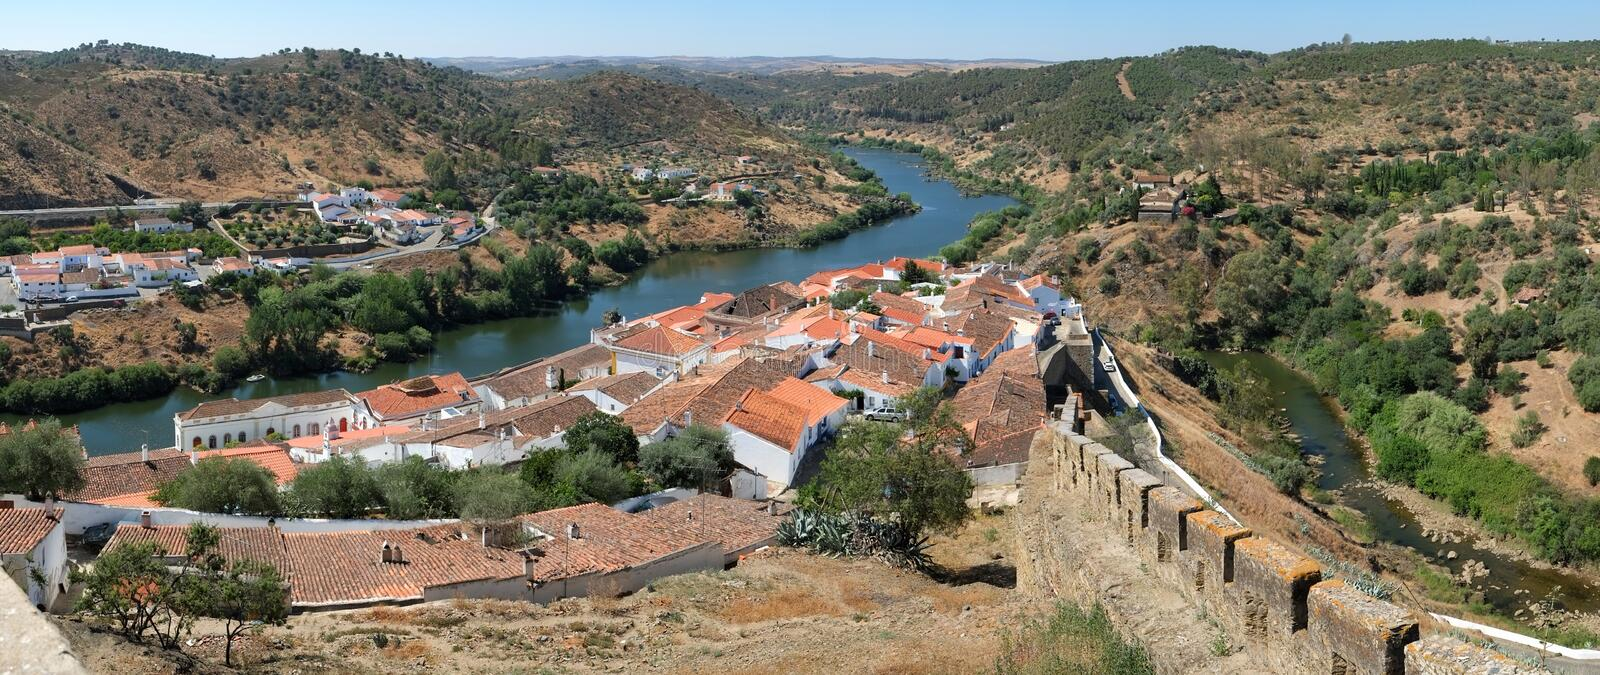 Panoramic view of Guadiana river bend and residential houses of Mertola city on the ripe. Portugal. Panoramic view of Guadiana river bend and residential houses stock photo